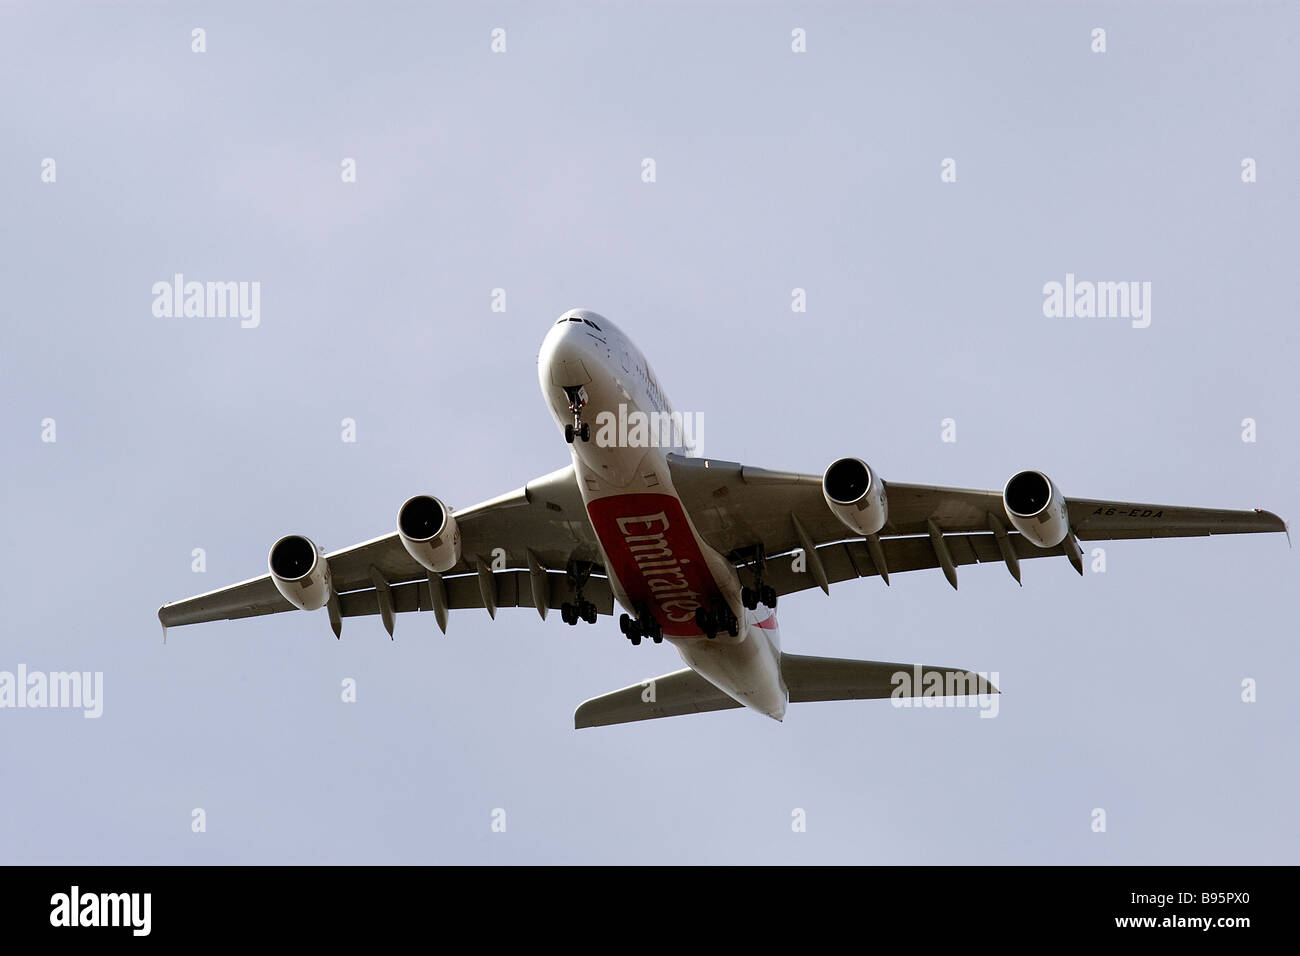 Emirates Airways new Airbus A380 long haul passenger aircraft prepares to land at London's Heathrow Airport - Stock Image